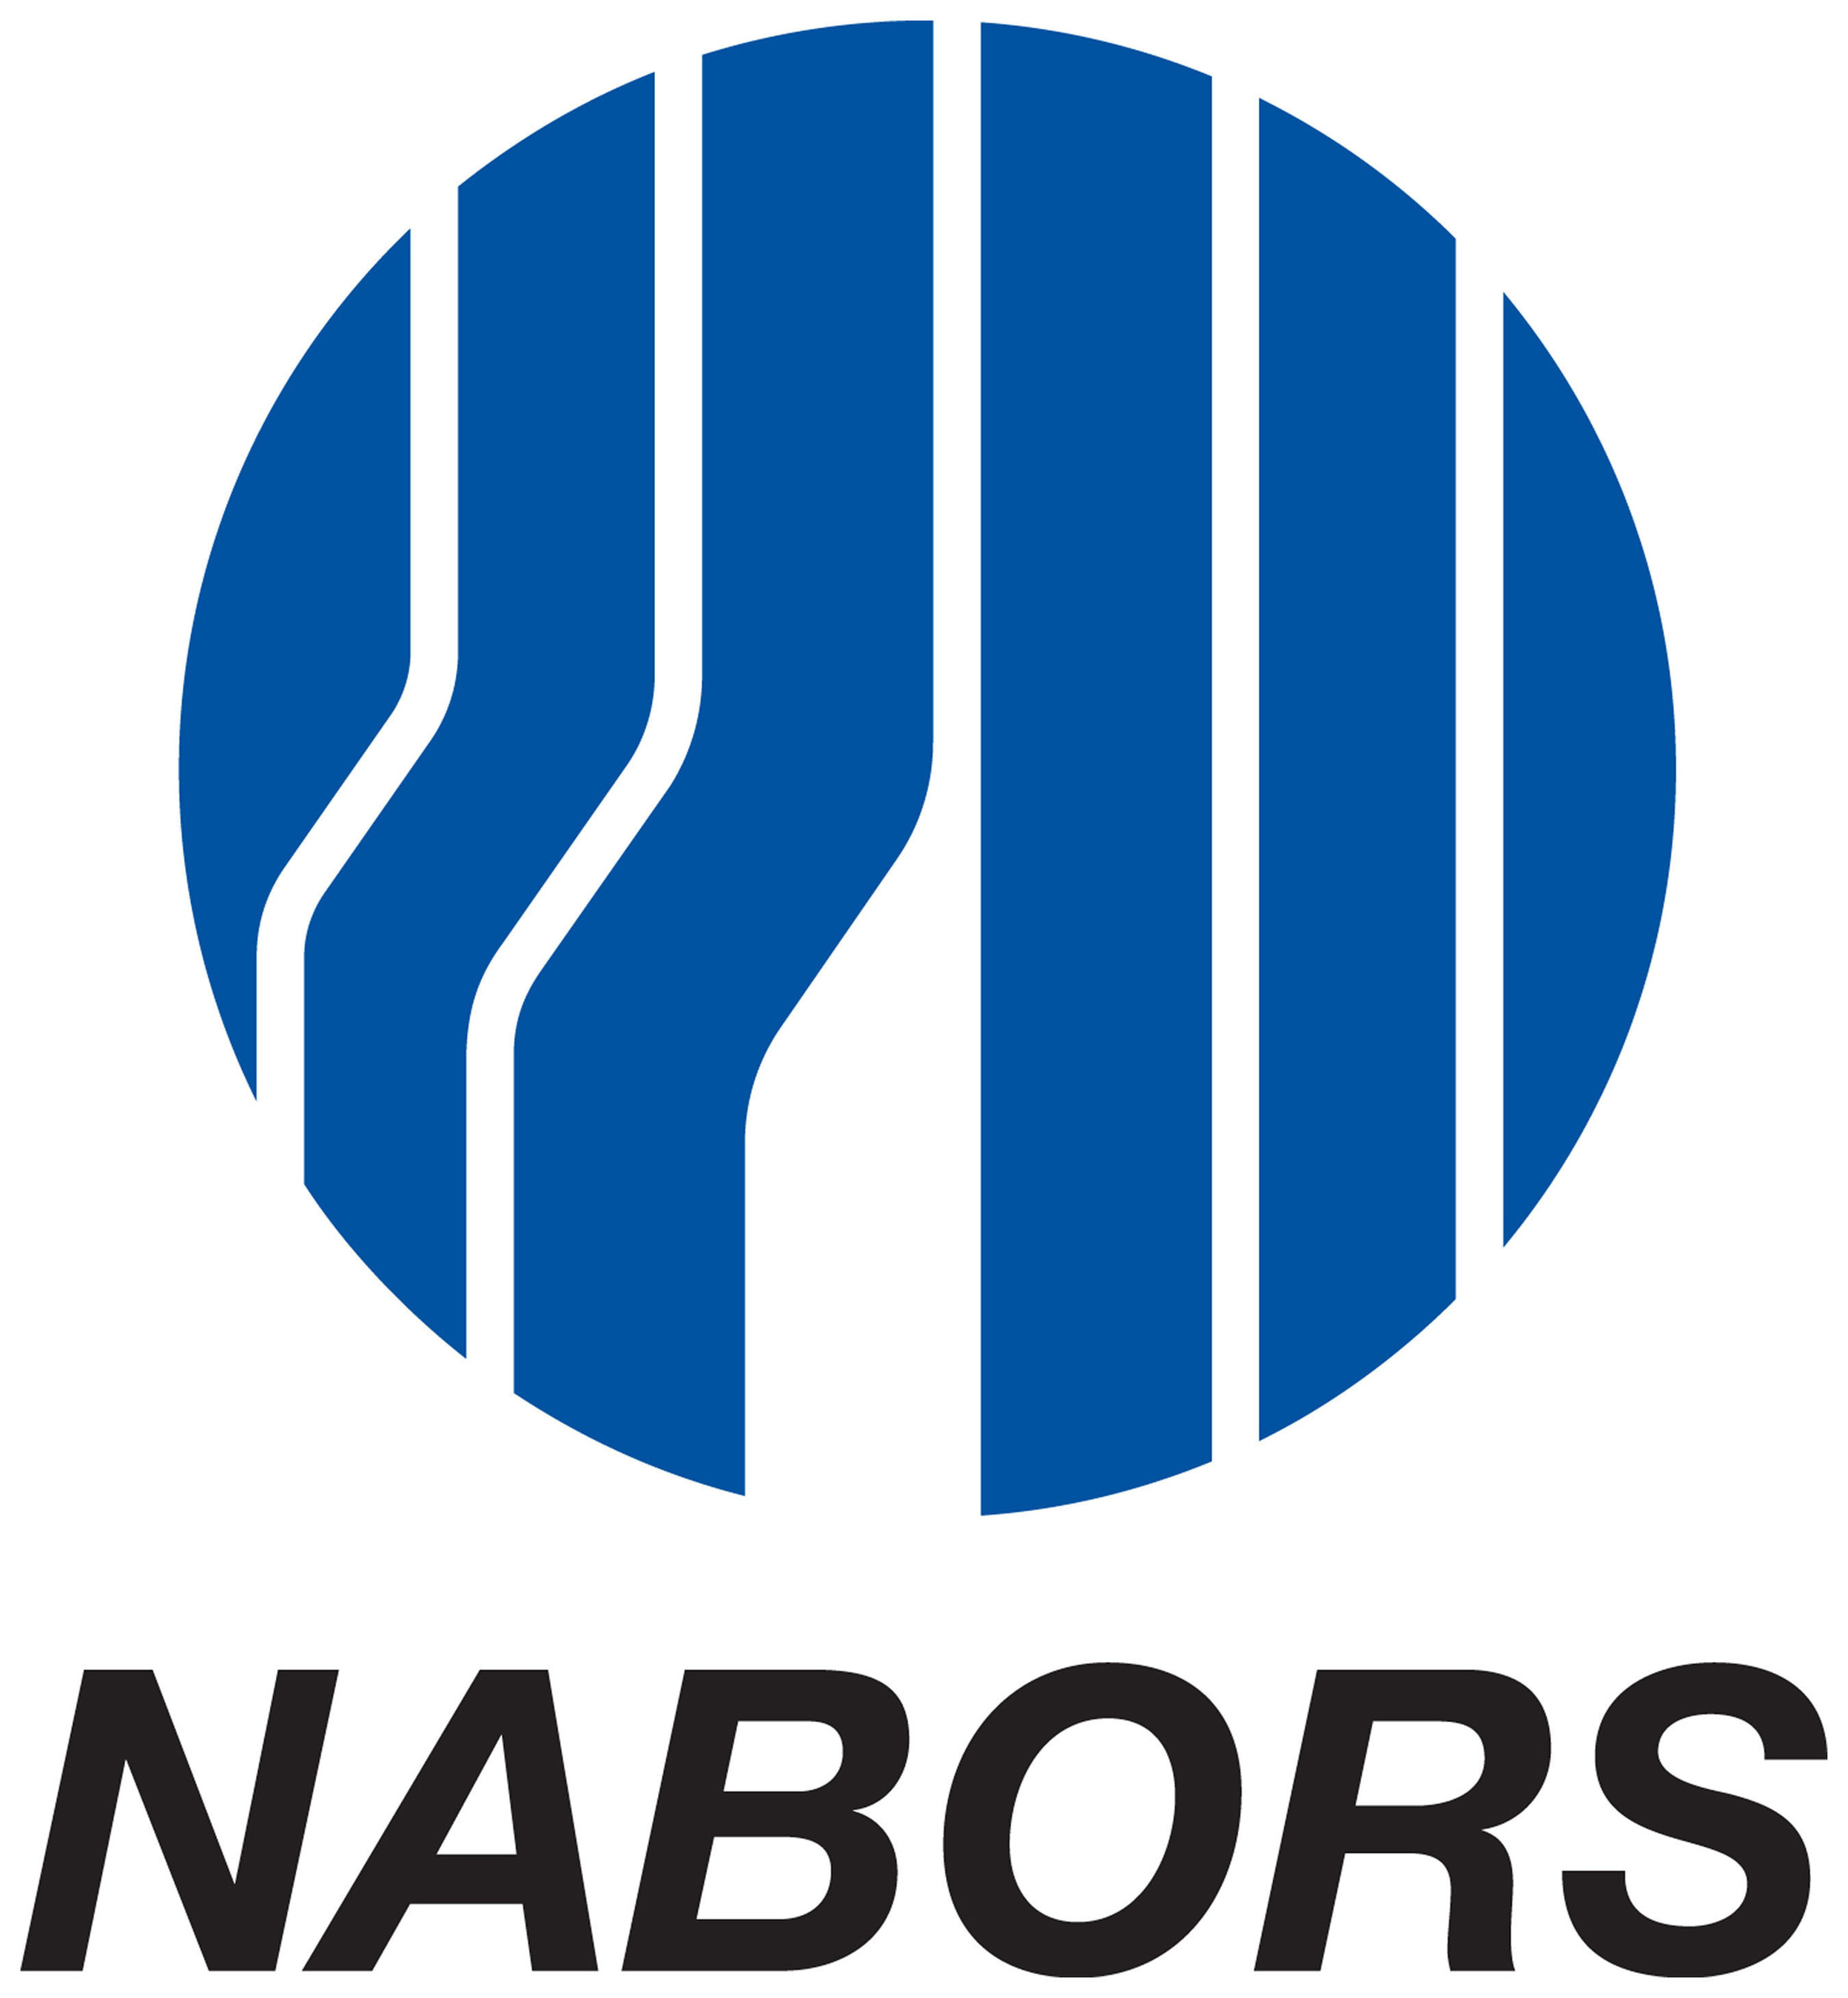 Nabors Mourns the Passing of C&J Energy Services Founder, Chairman & CEO Josh Comstock